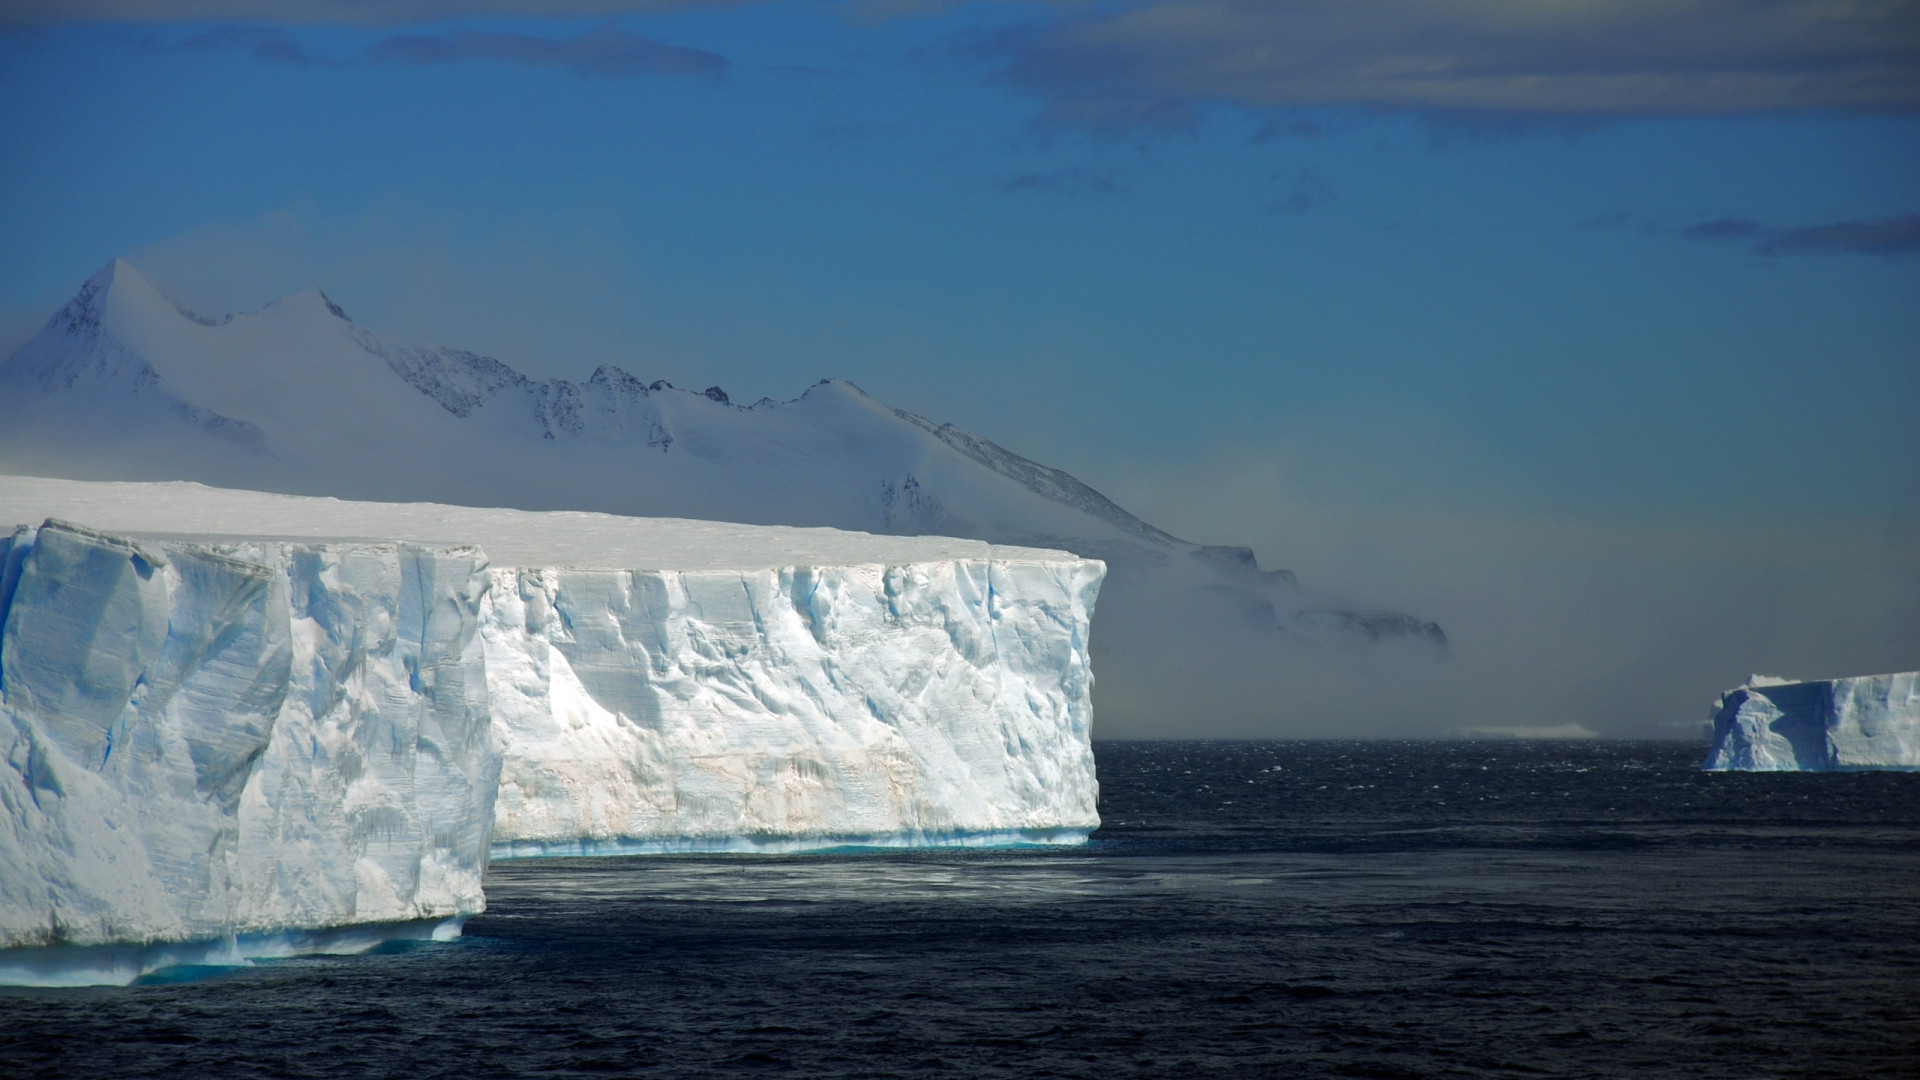 1920x1080 Preview wallpaper icebergs, antarctica, white, blocks, cold, silence,  emptiness